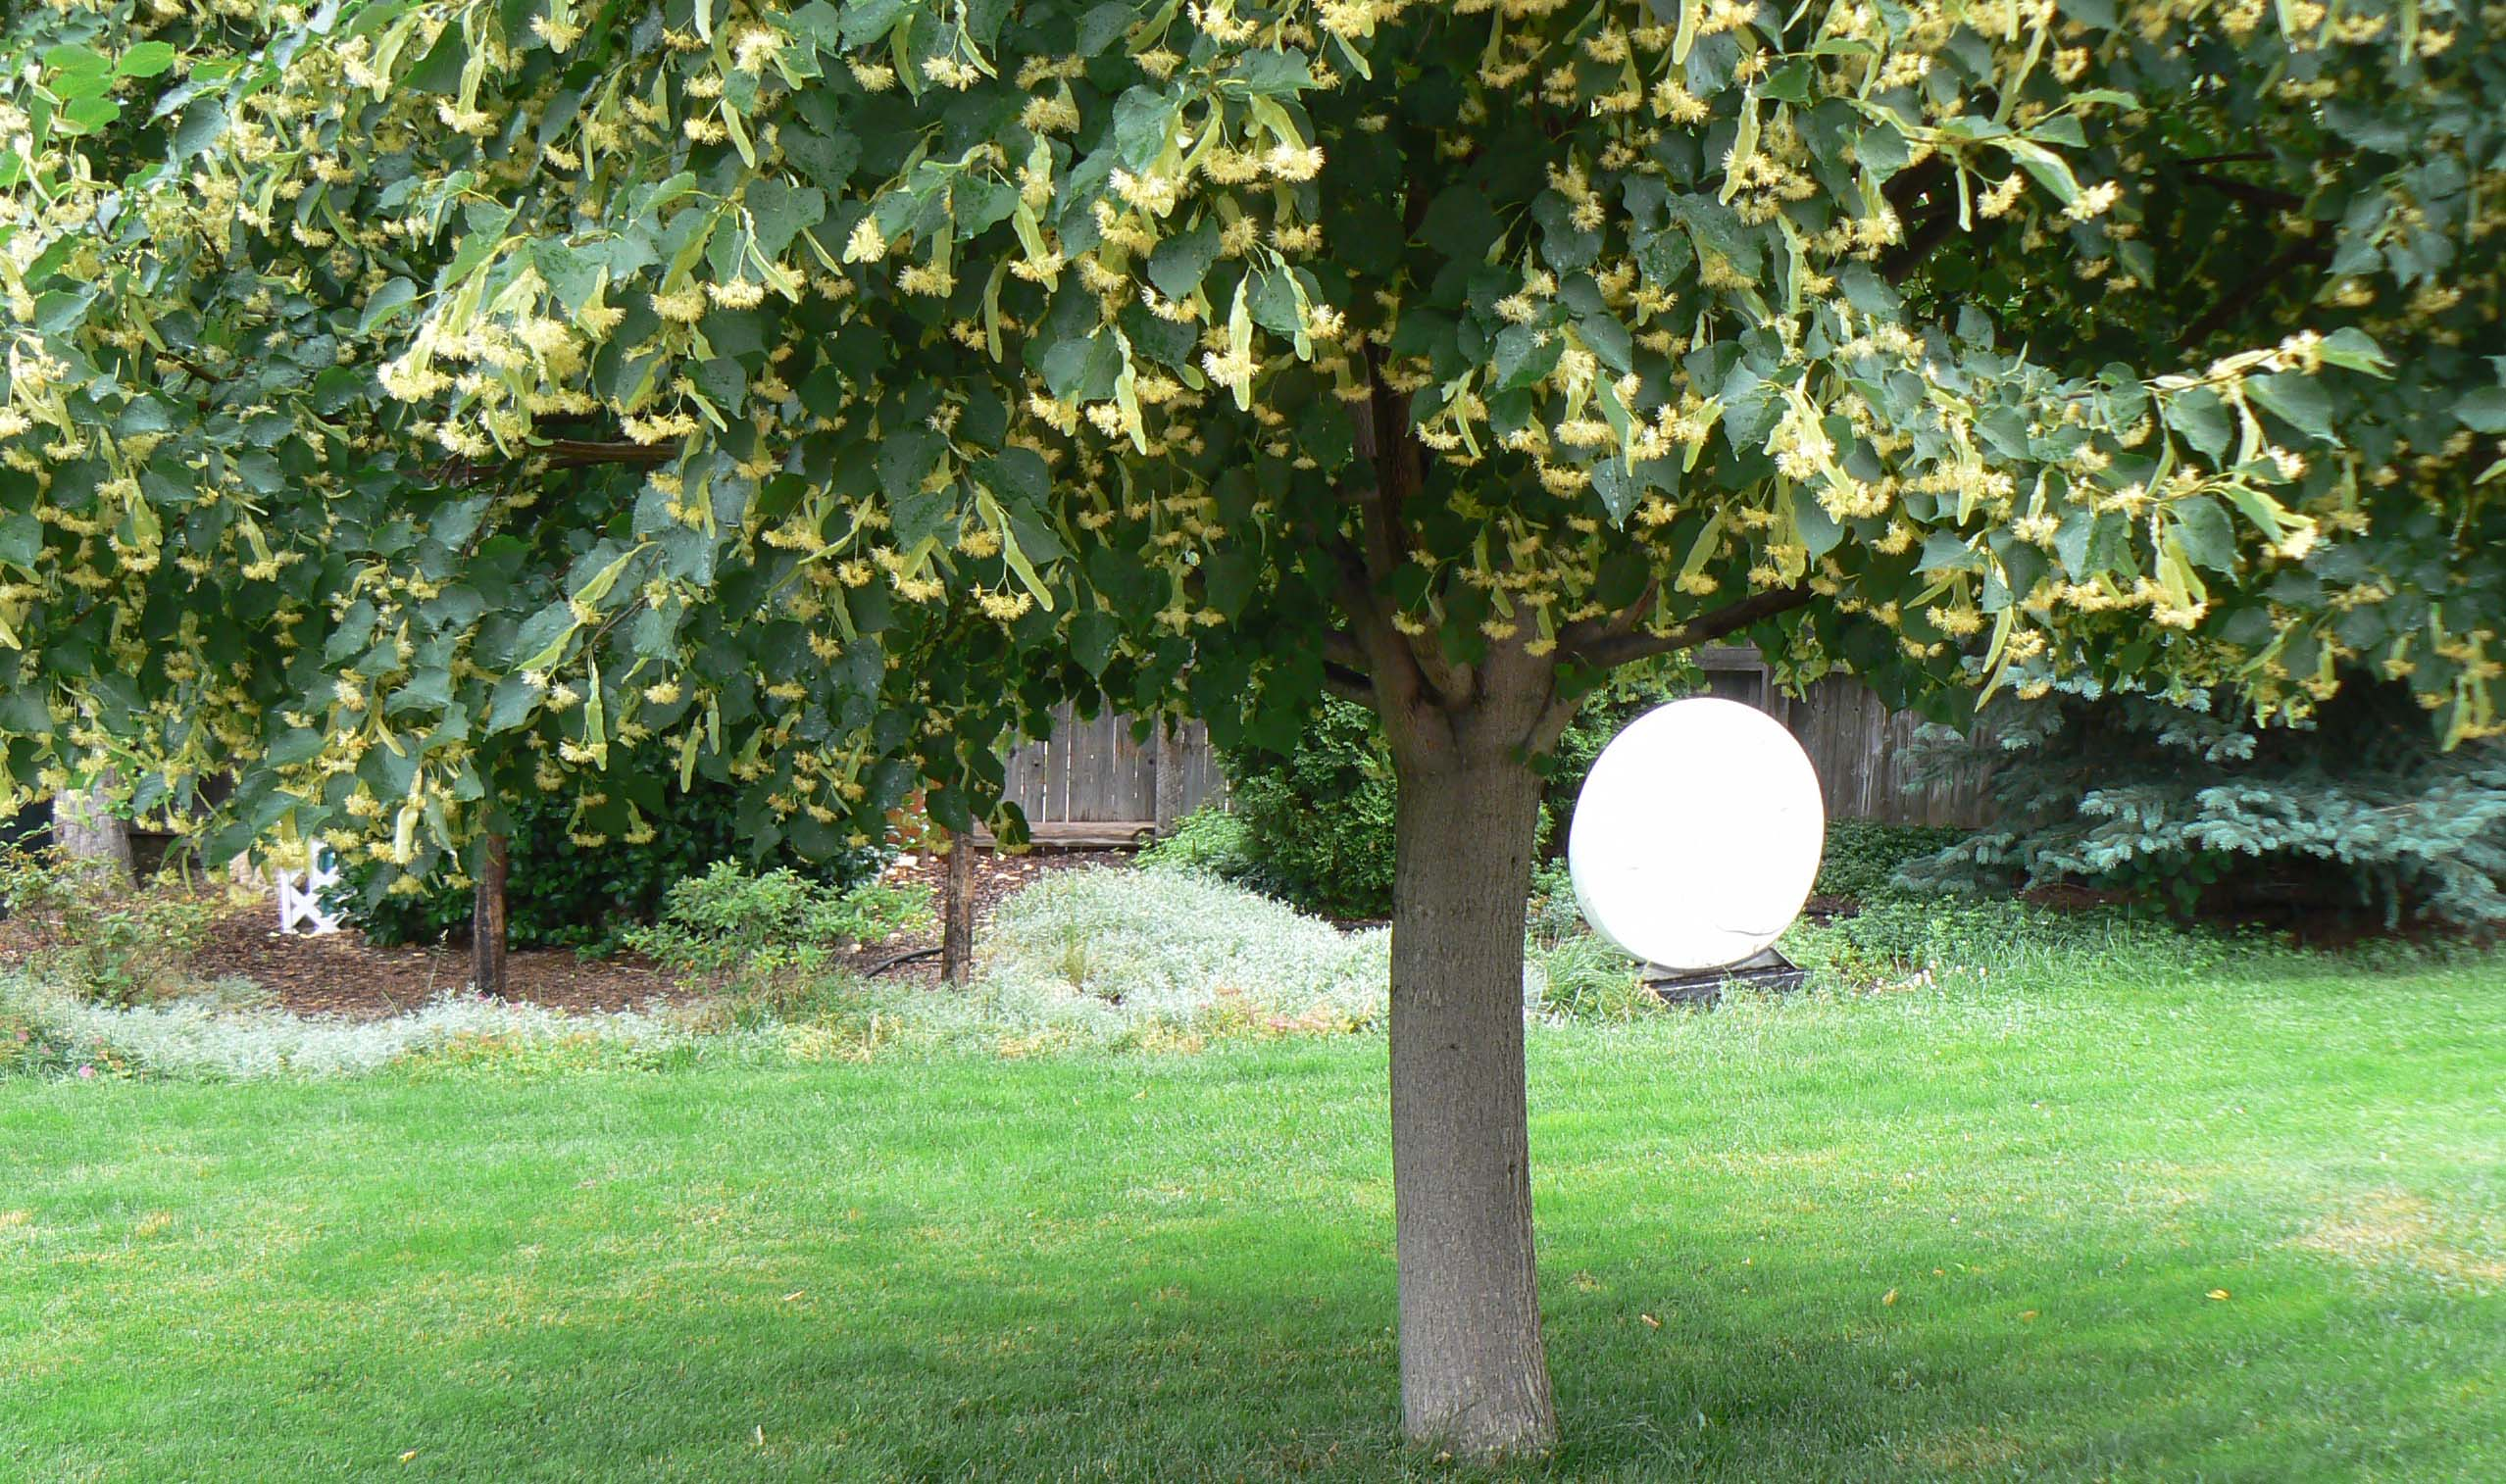 Lime Or Linden Tree With Autumn Leaves Stock Photo, Picture And ...